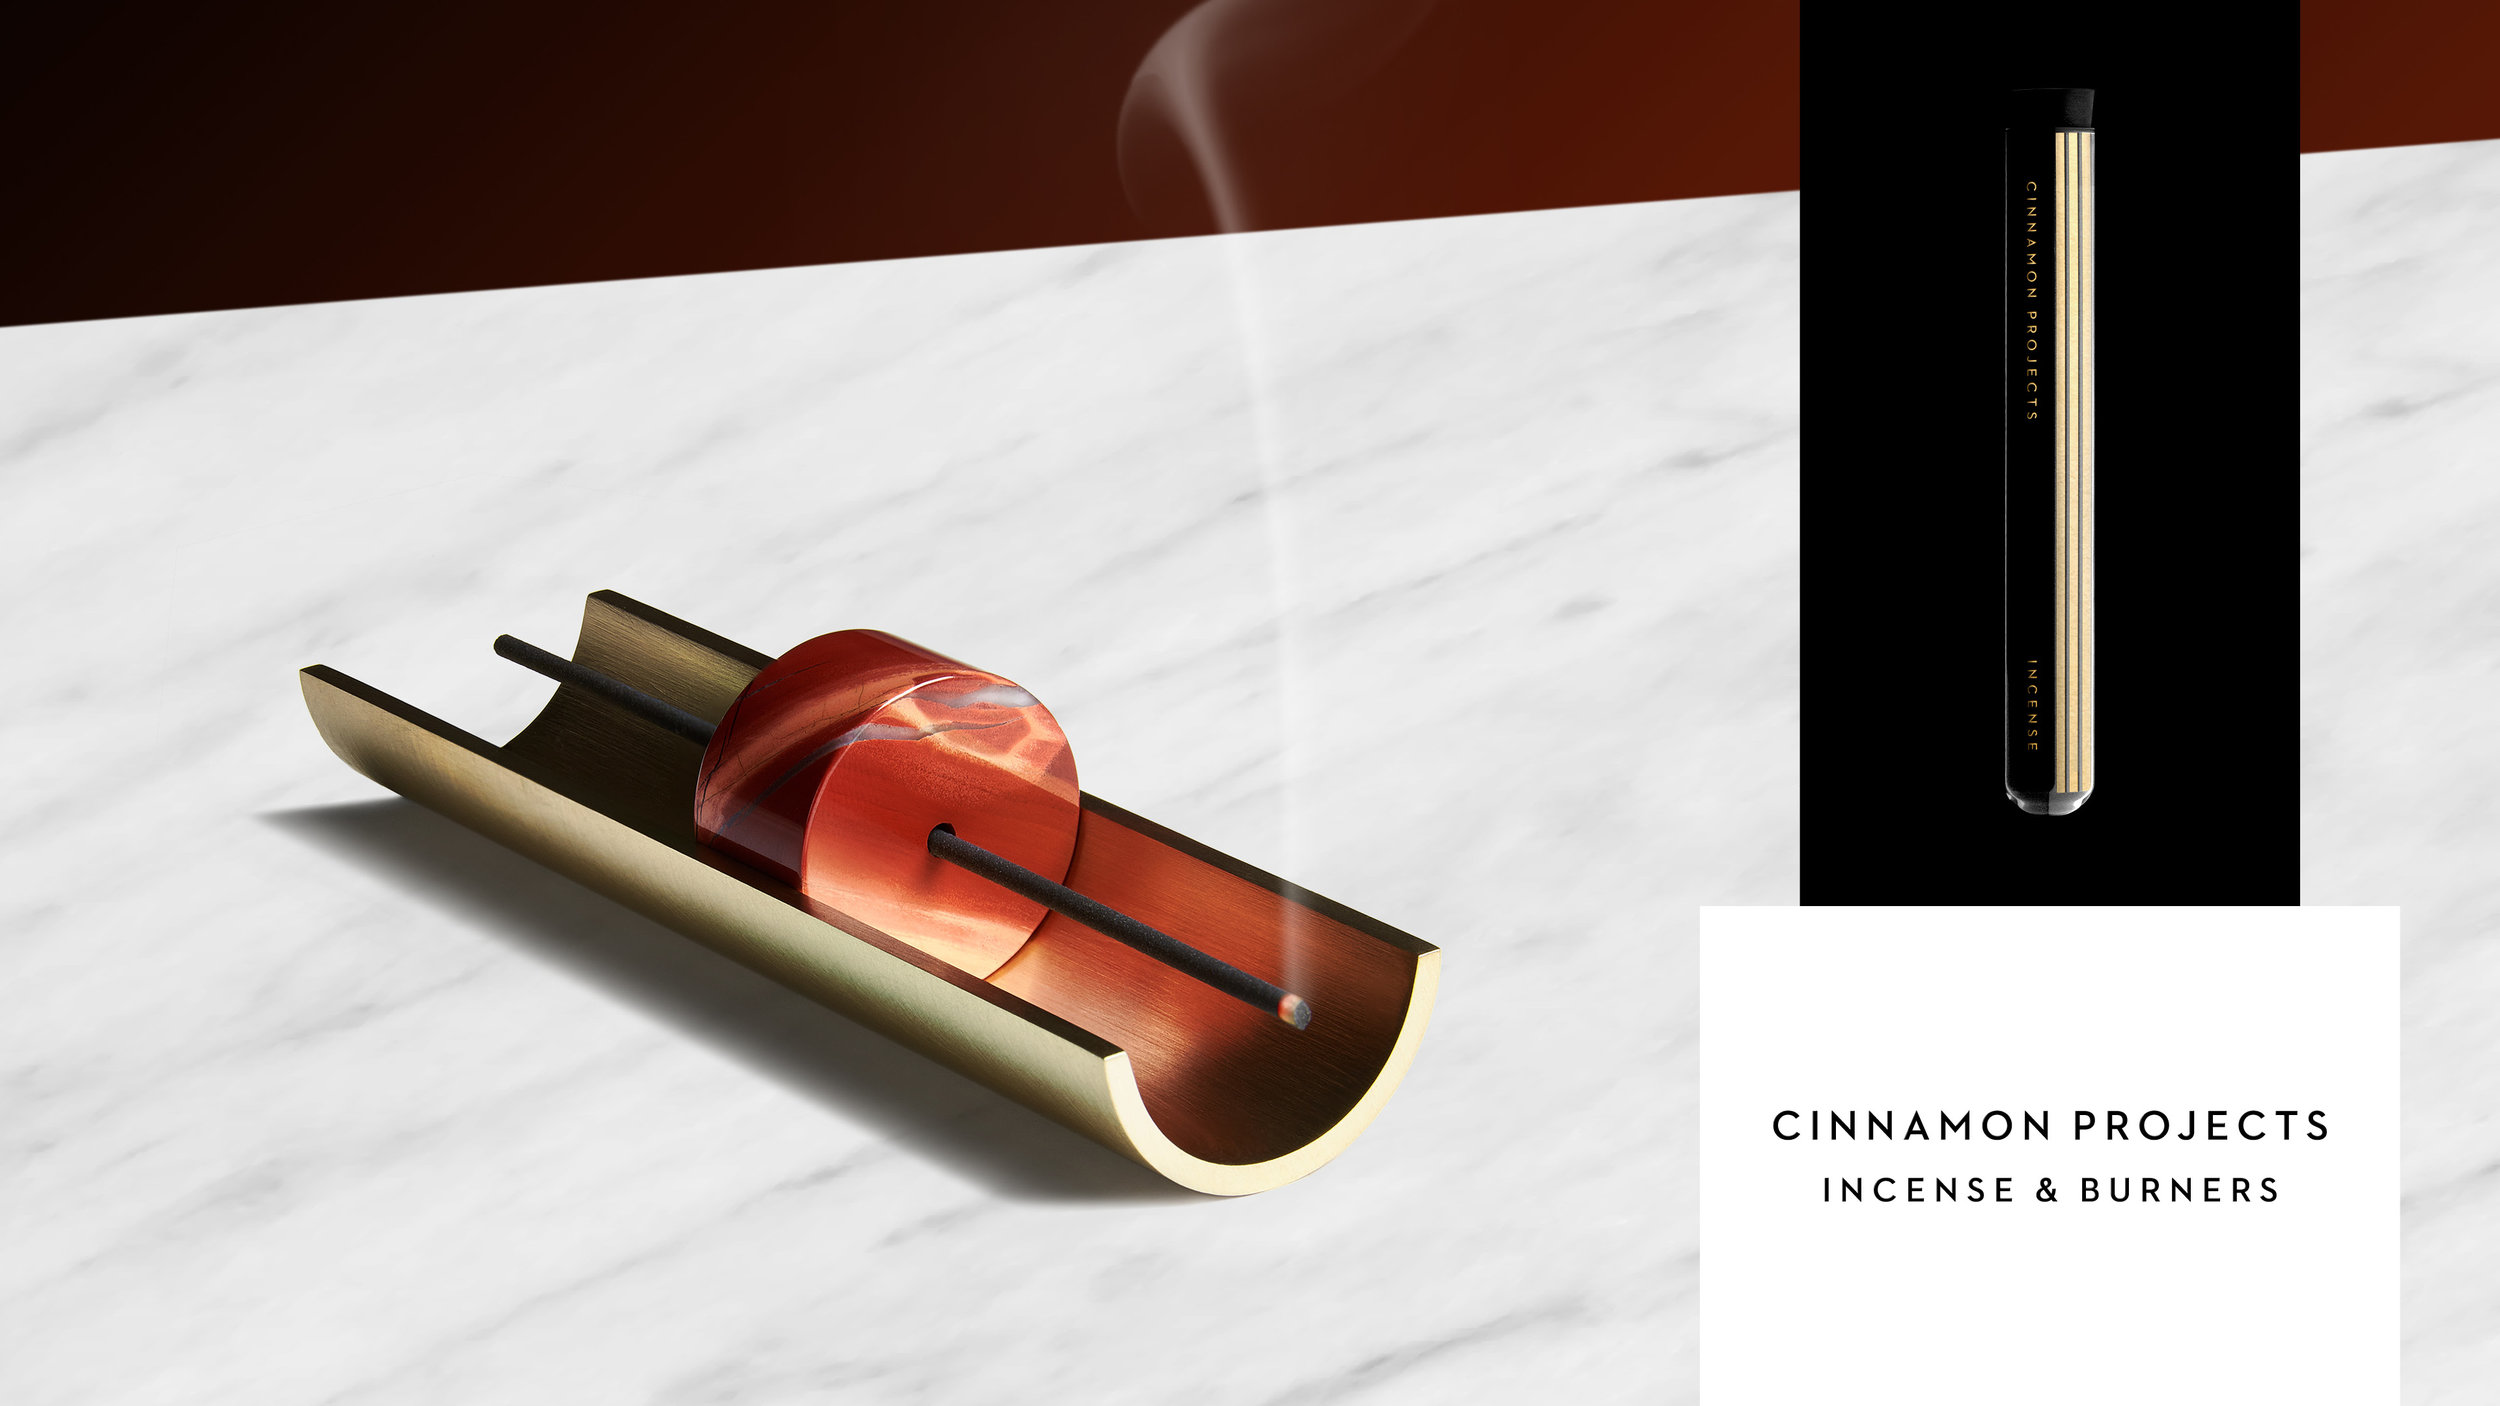 CINNAMON_PROJECTS_INCENSE_CIRCA-MINERAL_AD_1920X1080.jpg